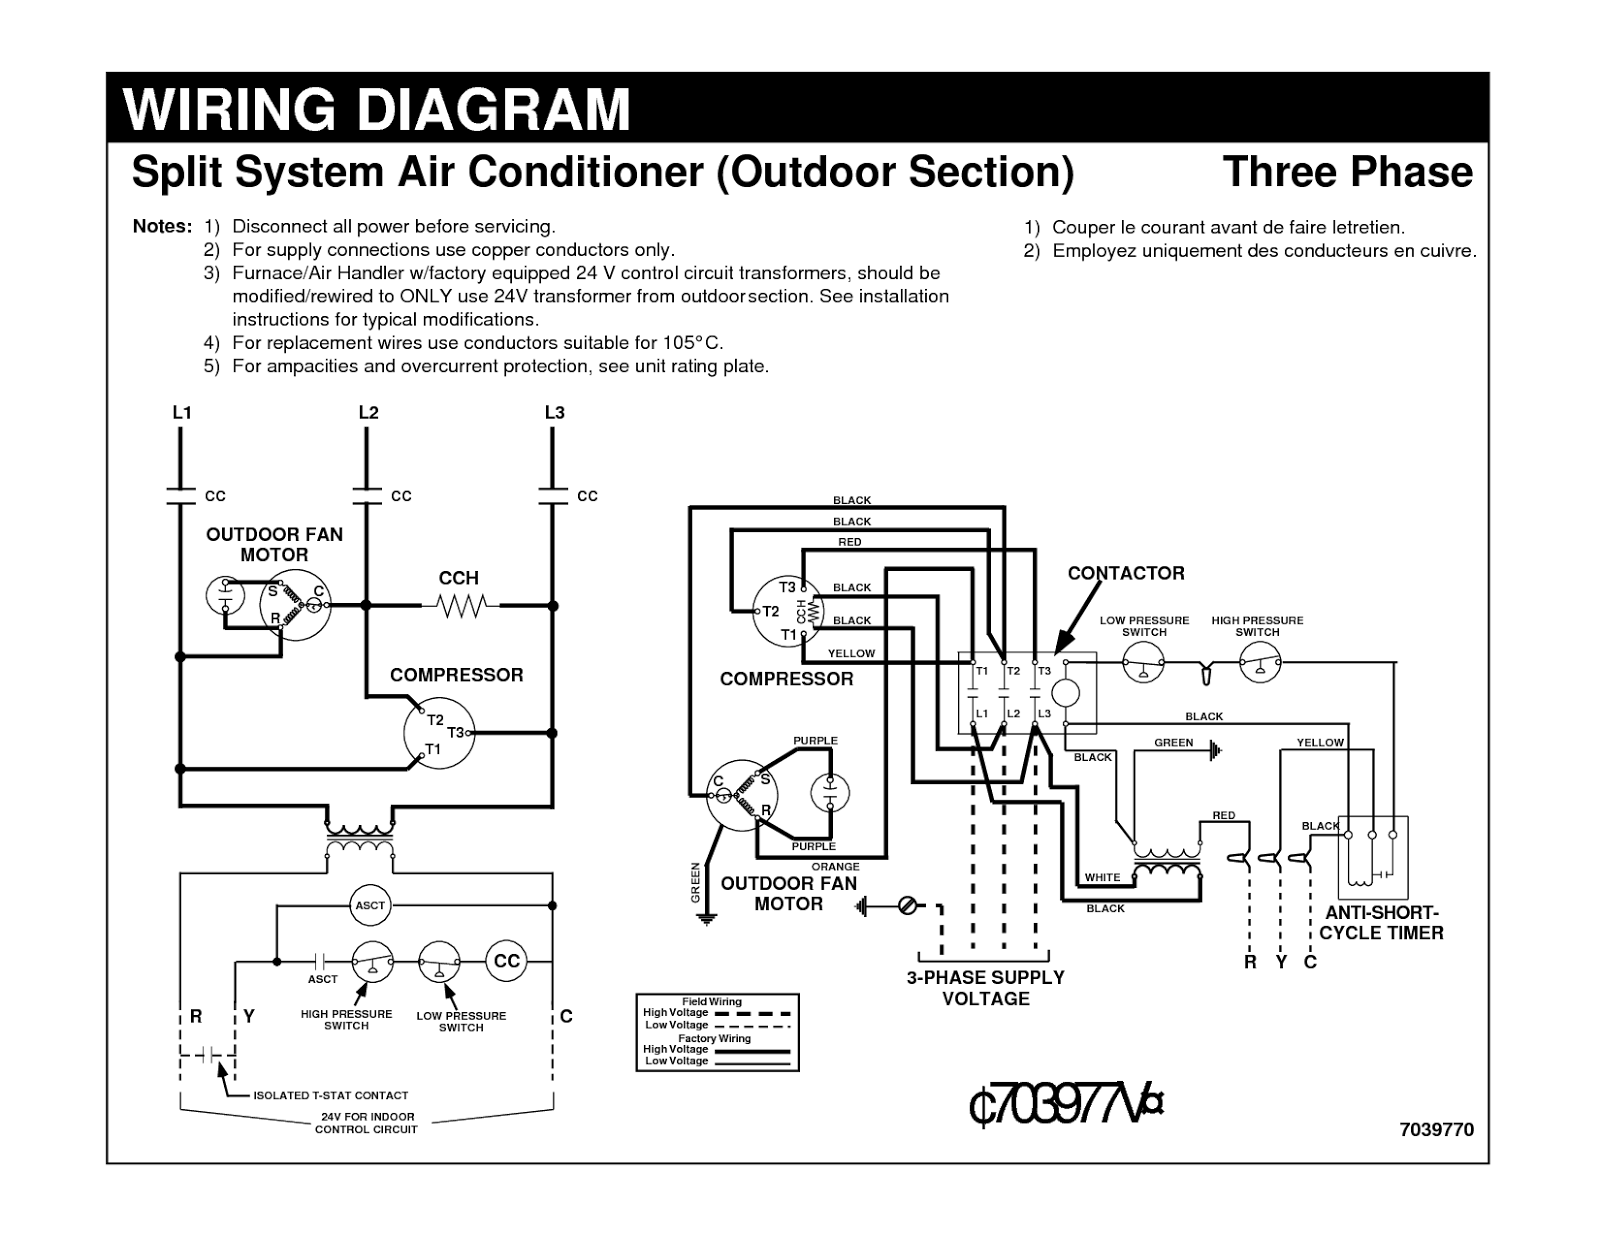 A C Wiring Schematics Circuit And Diagram Hub Malaysia Home Search For Diagrams Electrical Air Conditioning Systems Part One Rh Knowhow Com Ac Schematic Outlet